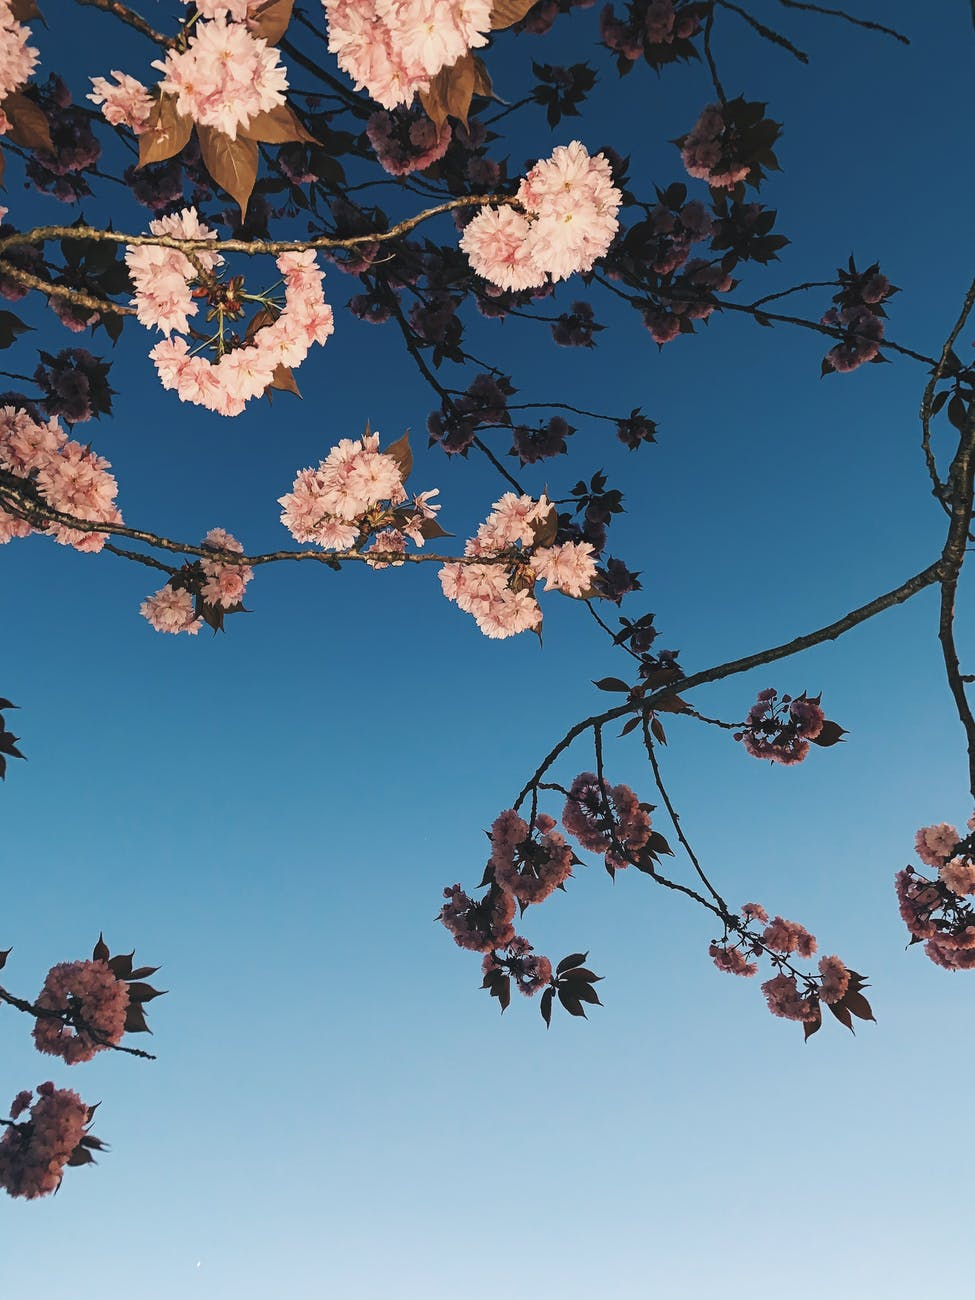 Branch of a tree with pink blossom against a blue sky